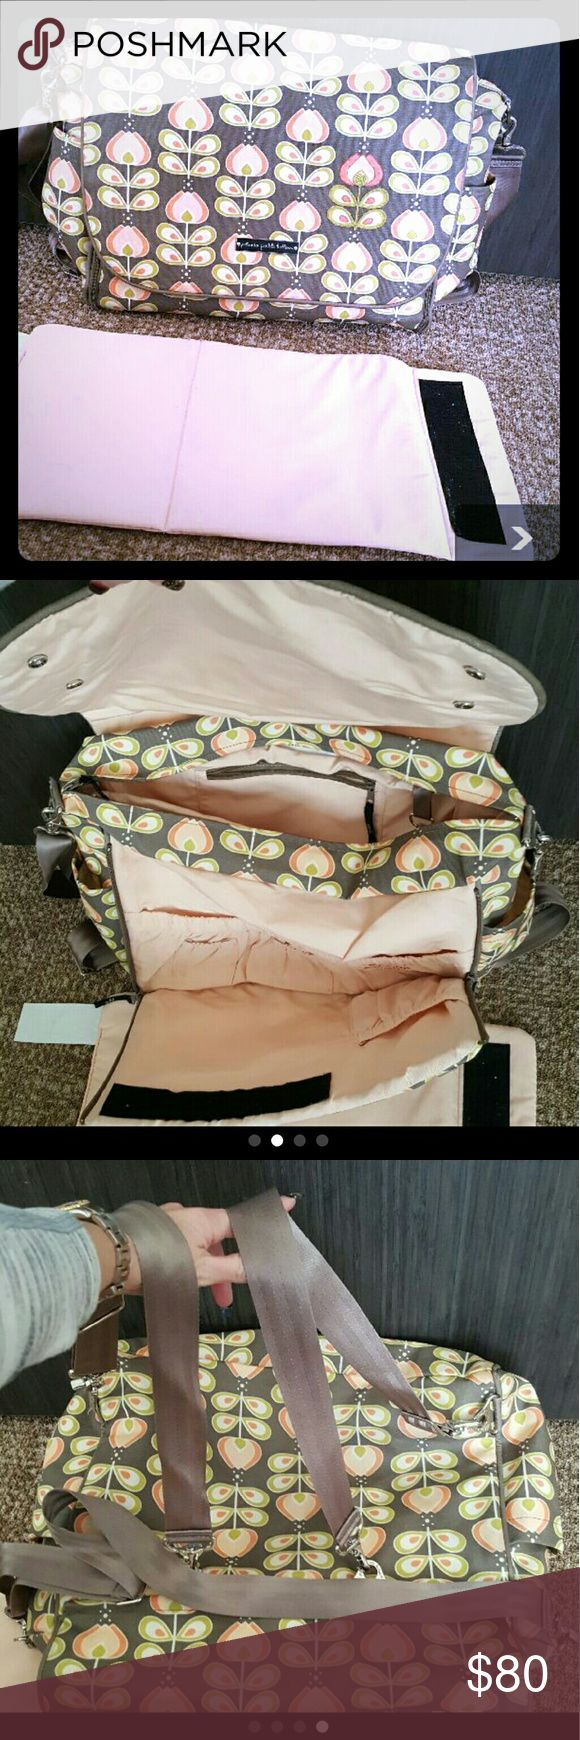 Petunia Pickle Bottom extra large diaper bag This is pre-owned but in really good condition Petunia Pickle Bottom diaper bag the compartments can wear it backpack style or around the shoulder straps are adjustable comes with pad to lay down to change baby Petunia Pickle Bottom Bags Baby Bags